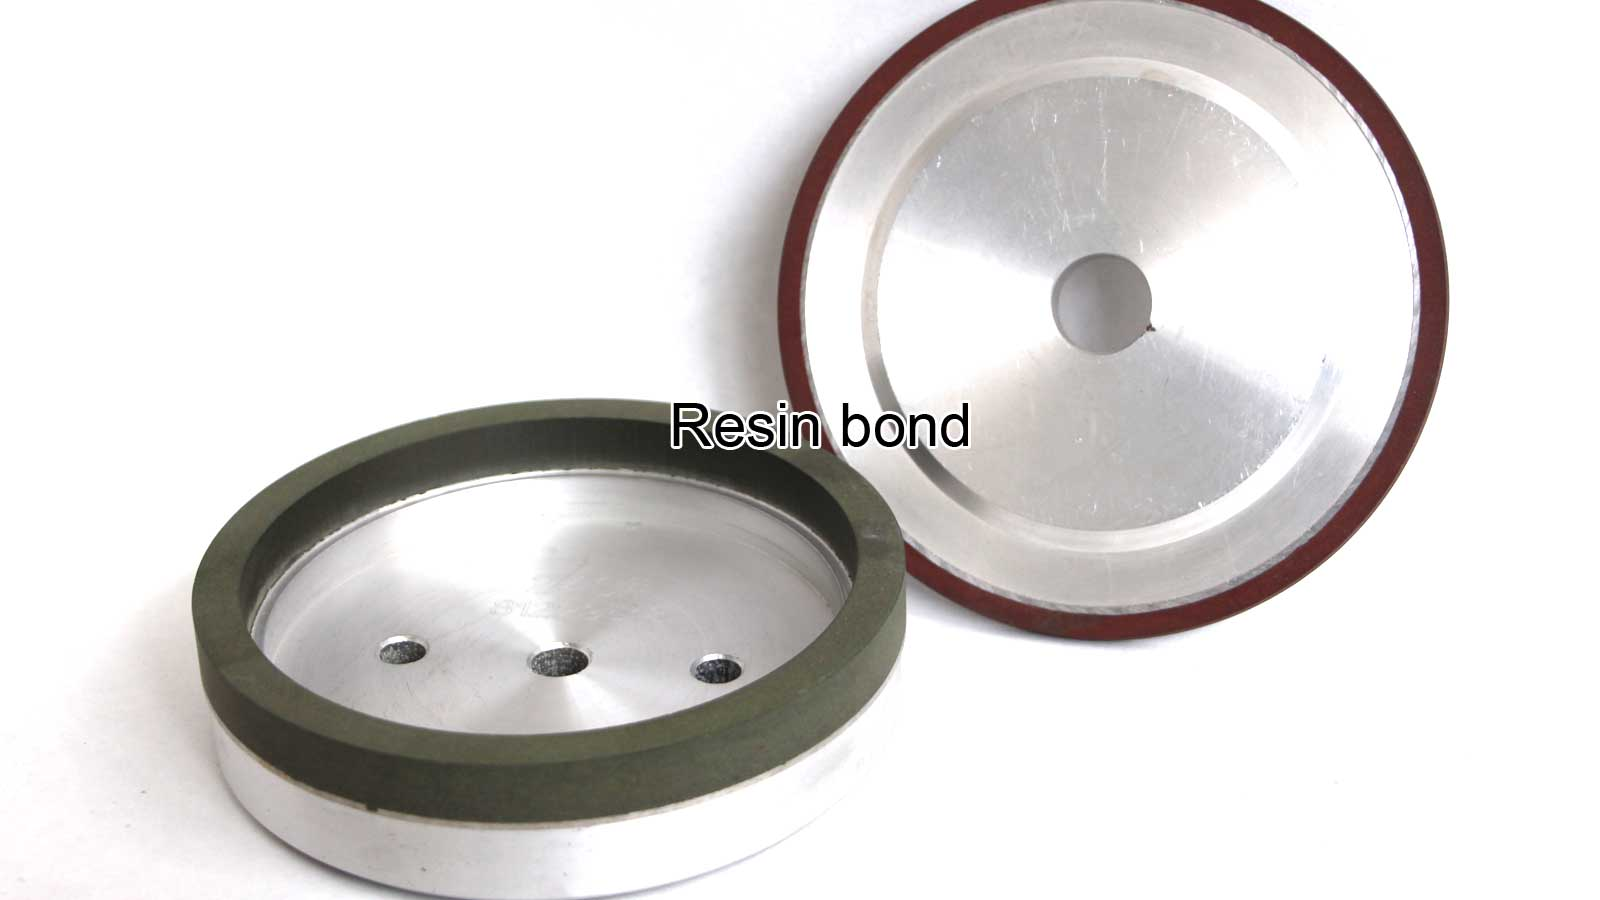 Resin-bond super abrasive wheels